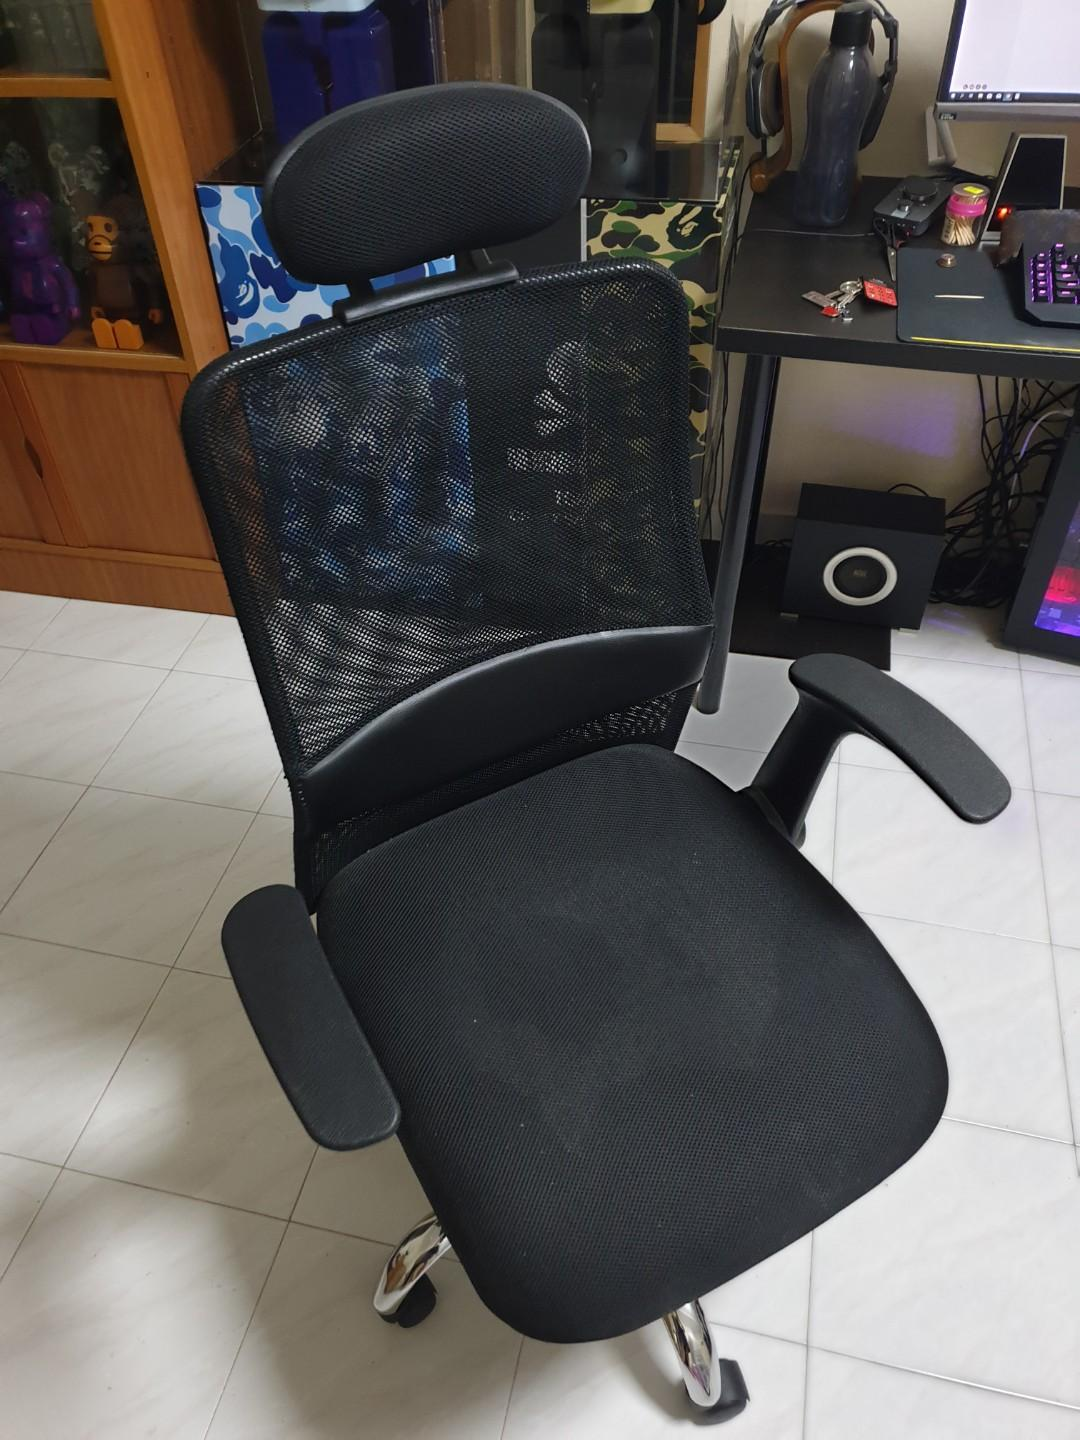 Admirable V Hive Zoe Office Chair Furniture Tables Chairs On Carousell Ibusinesslaw Wood Chair Design Ideas Ibusinesslaworg